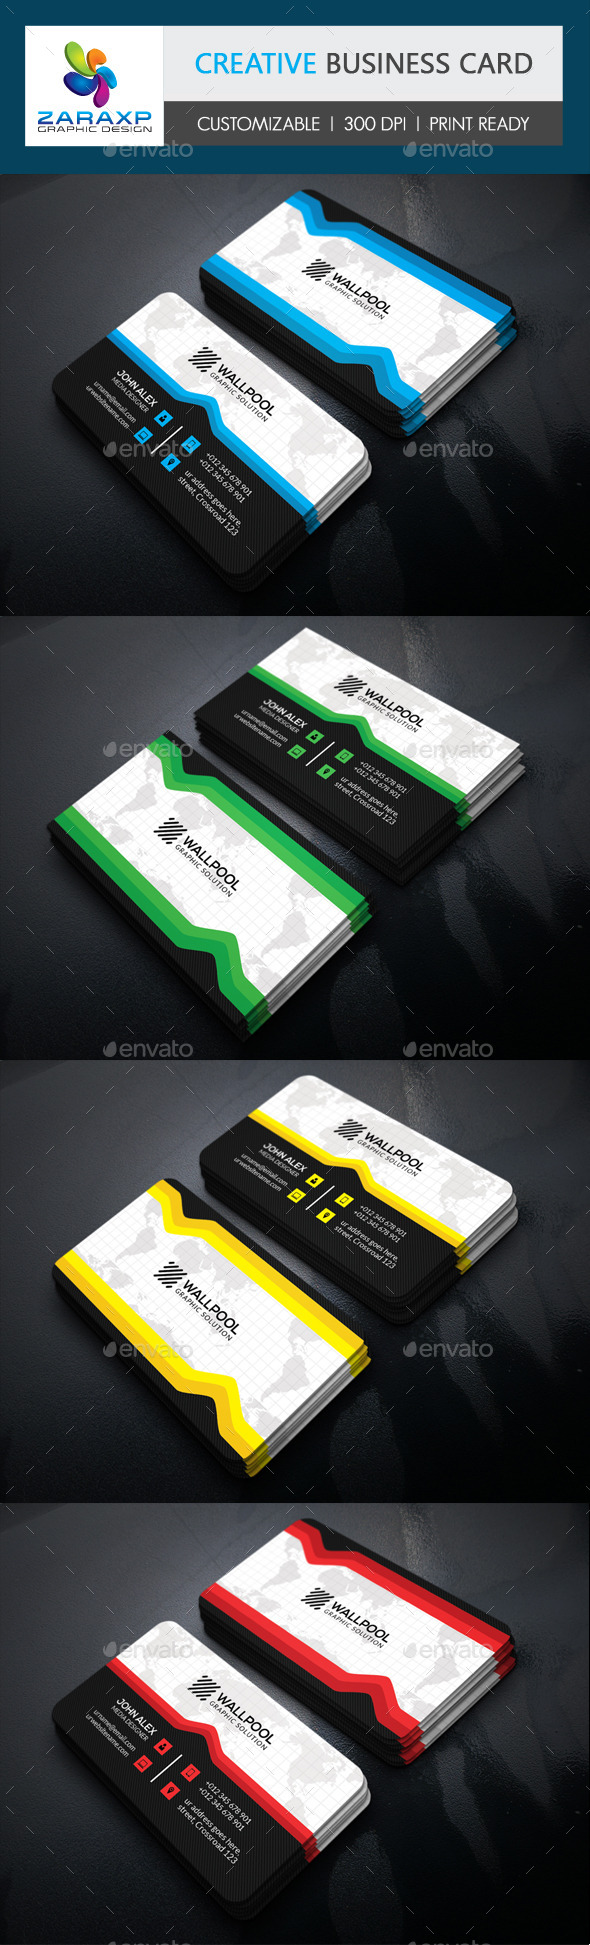 GraphicRiver Creative Business Card 11220287